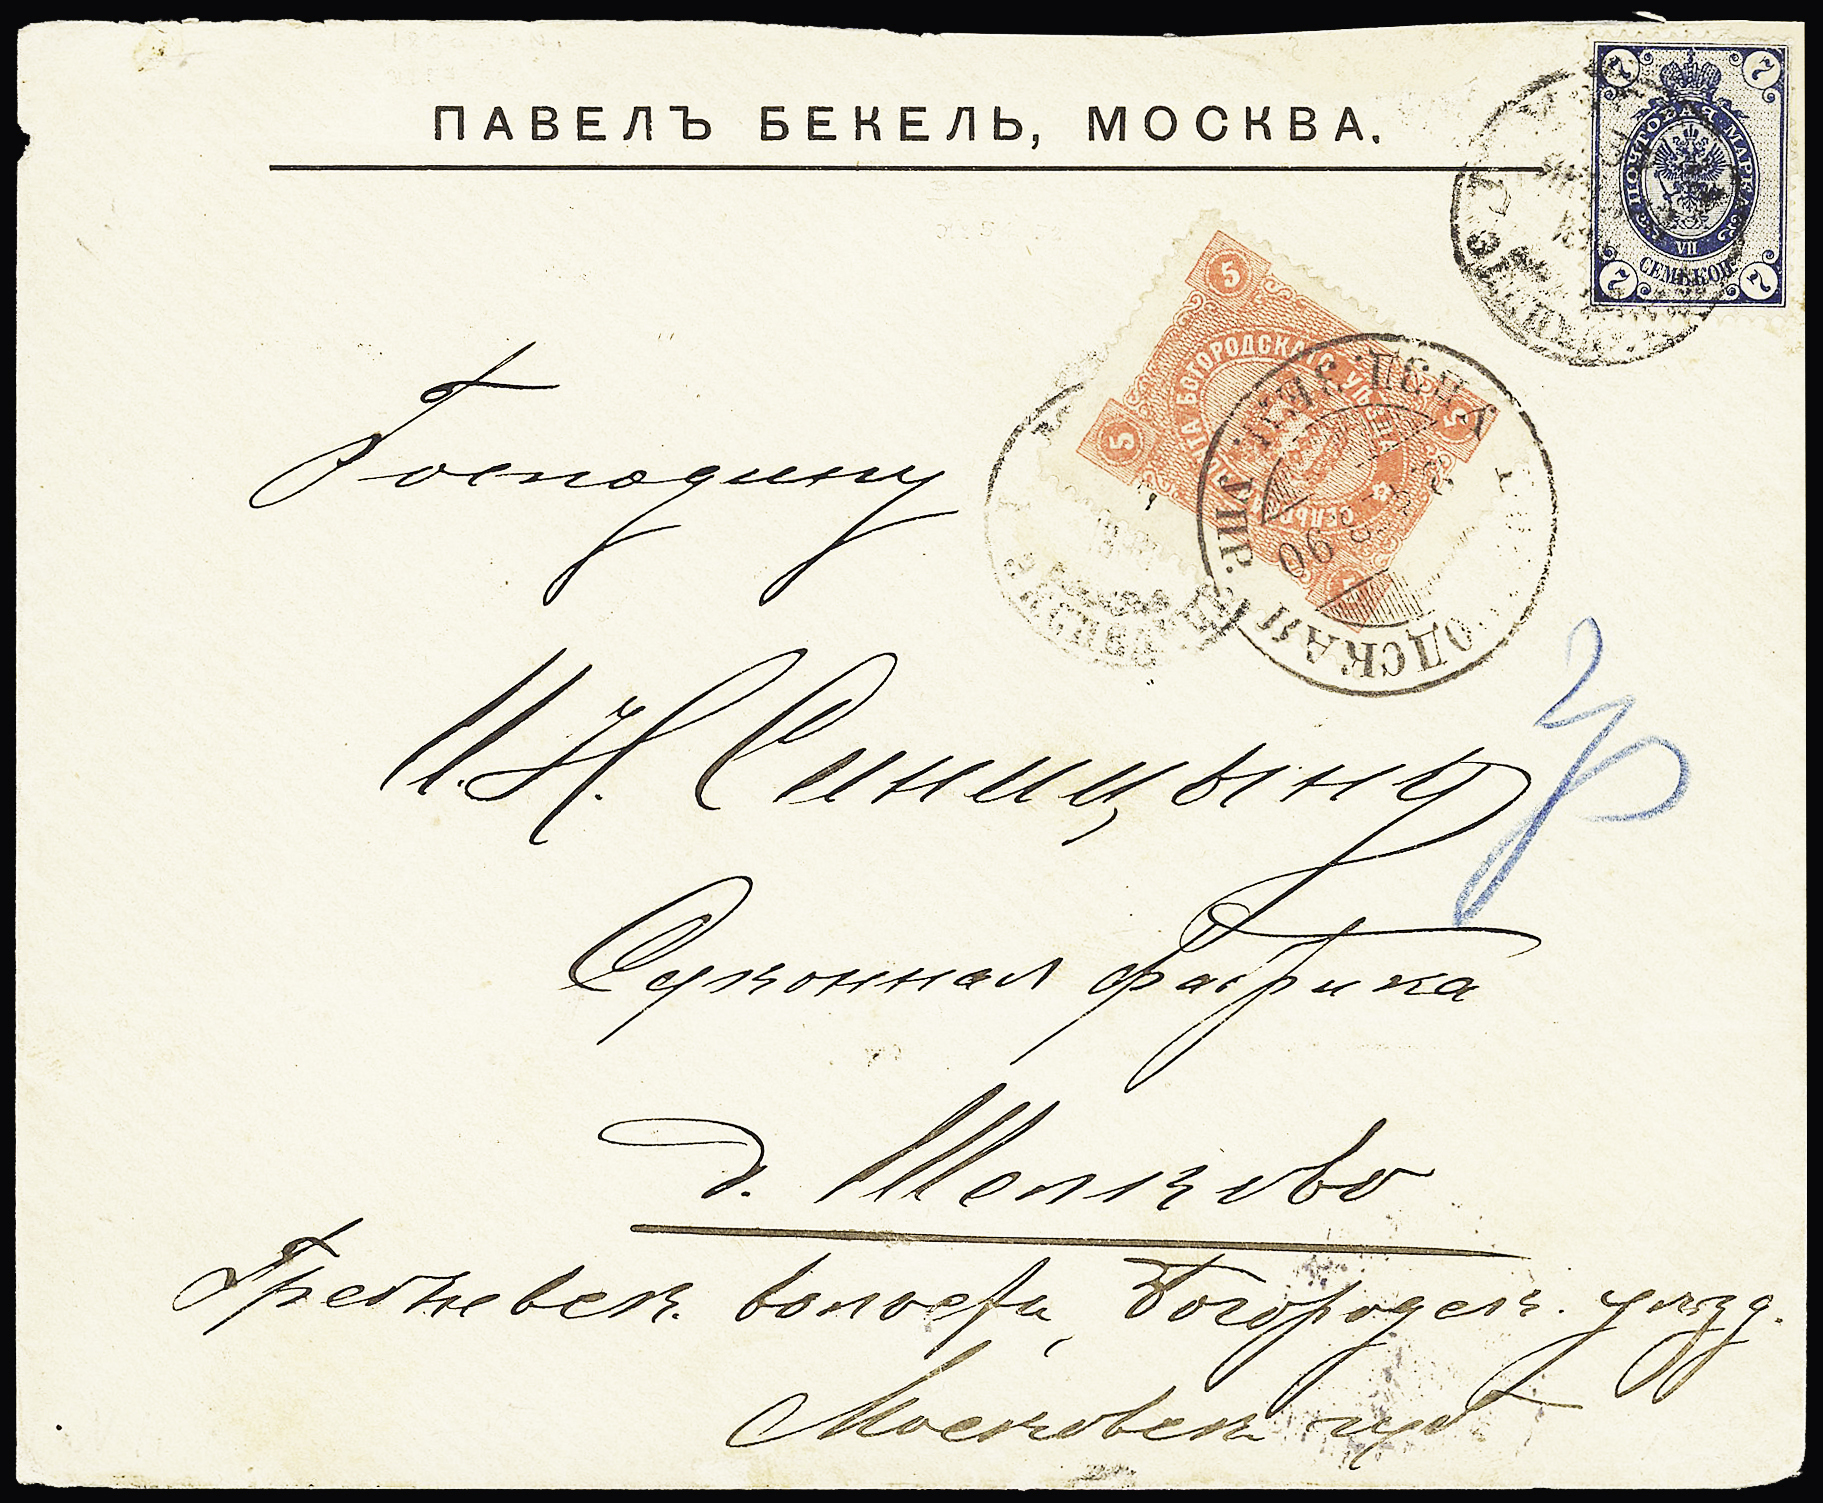 Lot 418 - Eastern Europe » RUSSIA - ZEMSTVOS » Bogorodsk (Moscow Government)  -  Le Timbre Classique SA SALE ON OFFERS N ° 37 PARIS